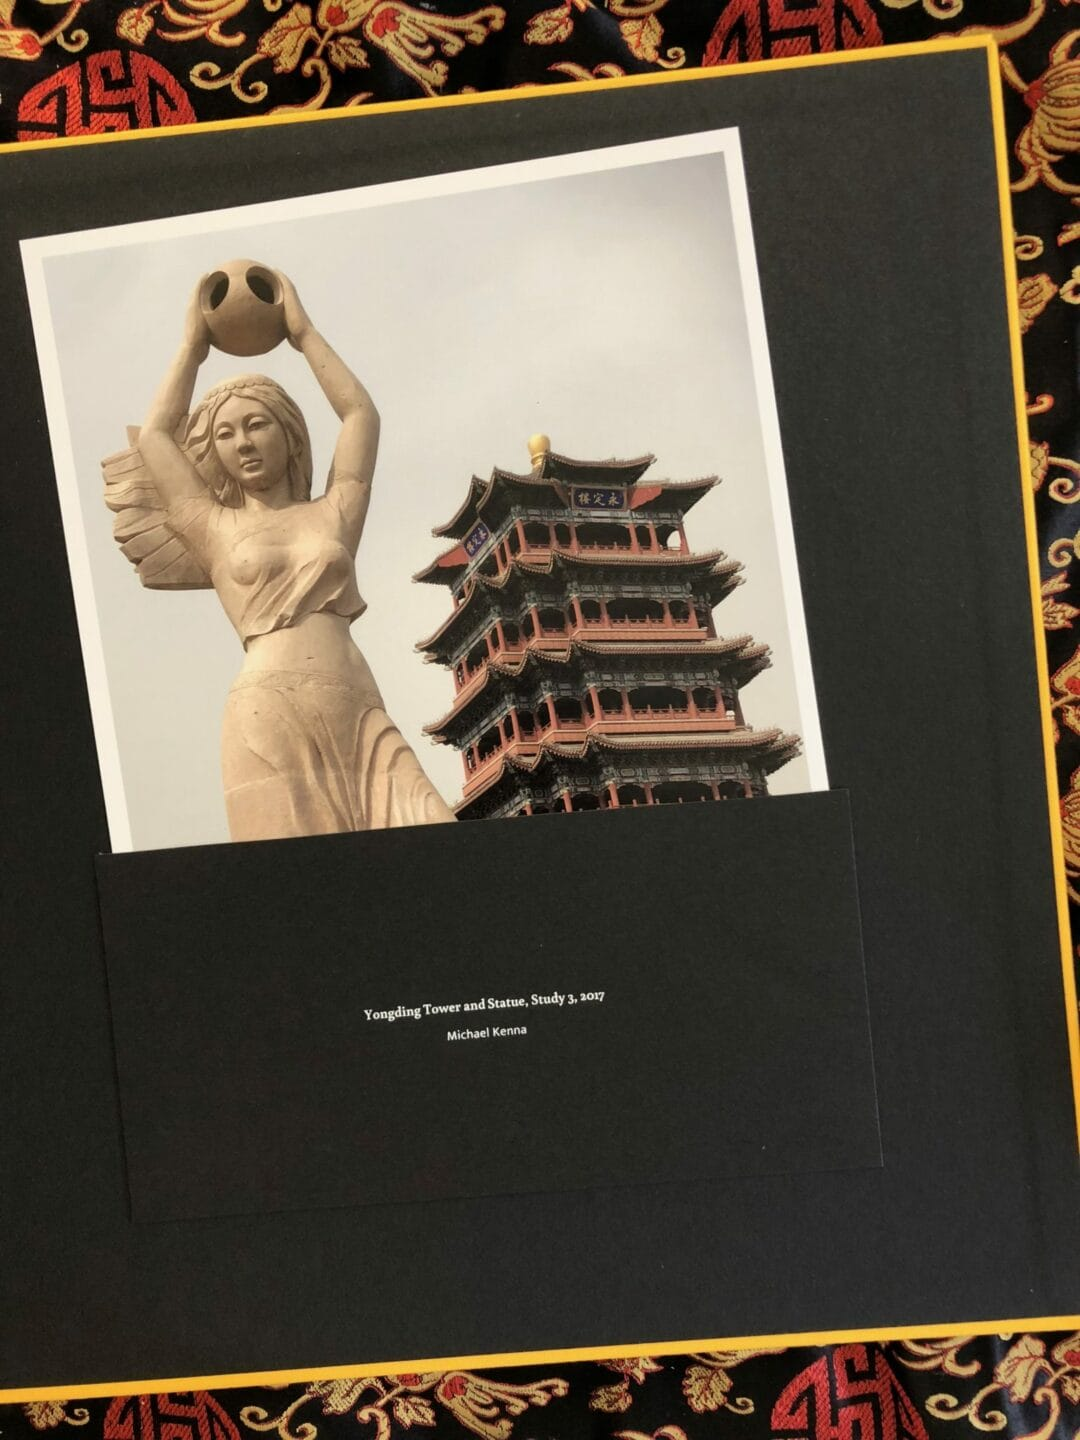 One Sunday in Beijing by Michael Kenna, Limited edition of 735 copies, 600 sold in one week #HappyPublisher #ArtOfPerfection Éditions Bessard c print souvenir of Beijing and one of the window in the book…